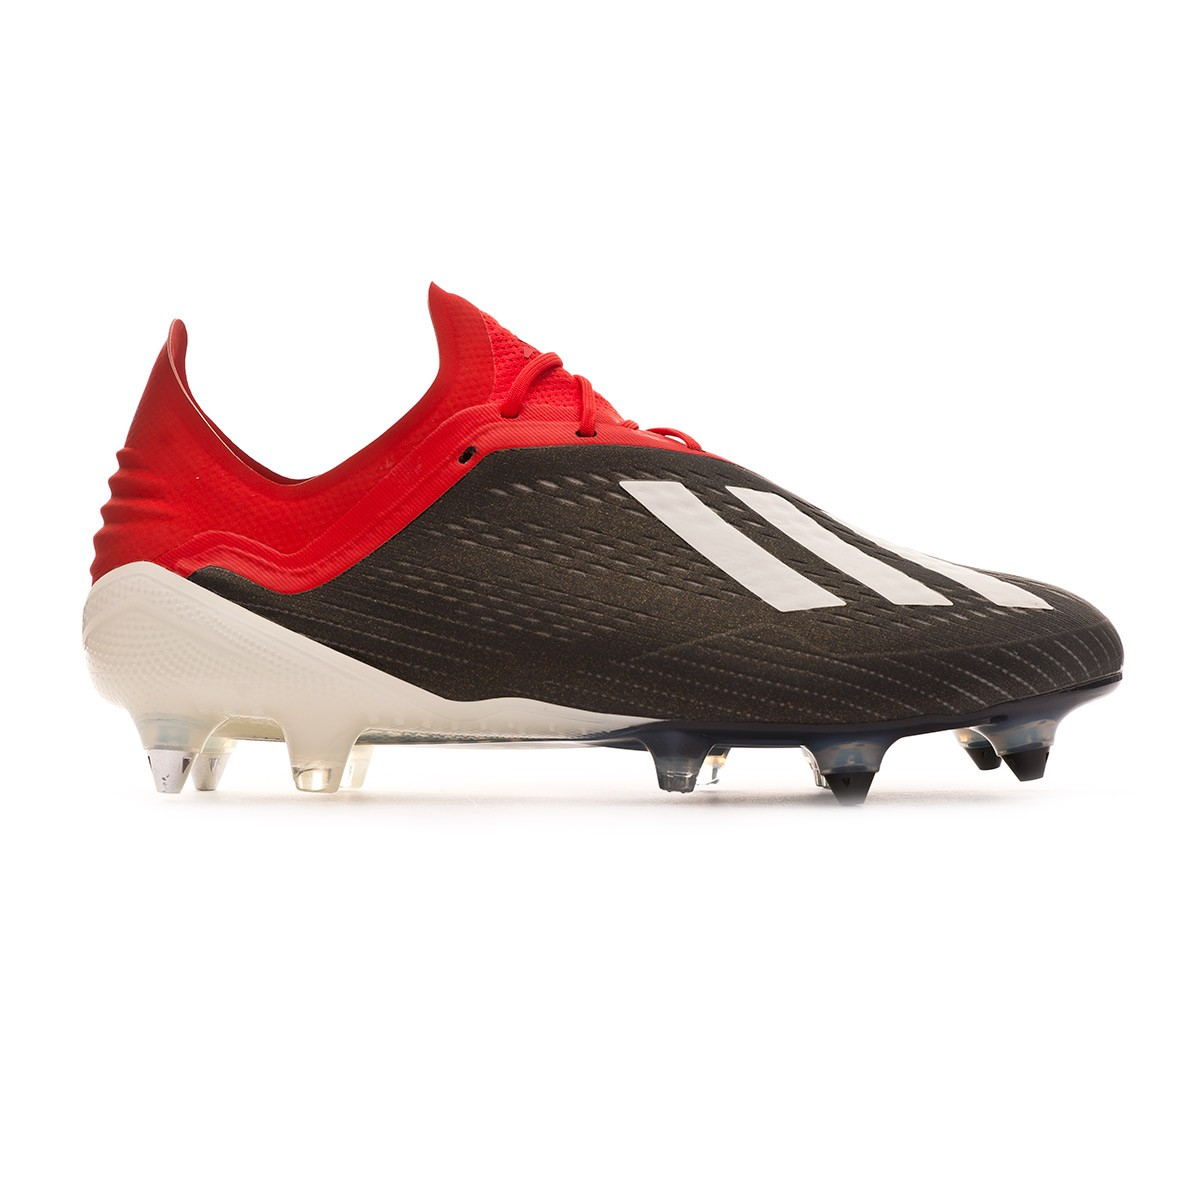 Scarpe Calcio Adidas X 18+ SG Team Mode Pack Adidas | eBay